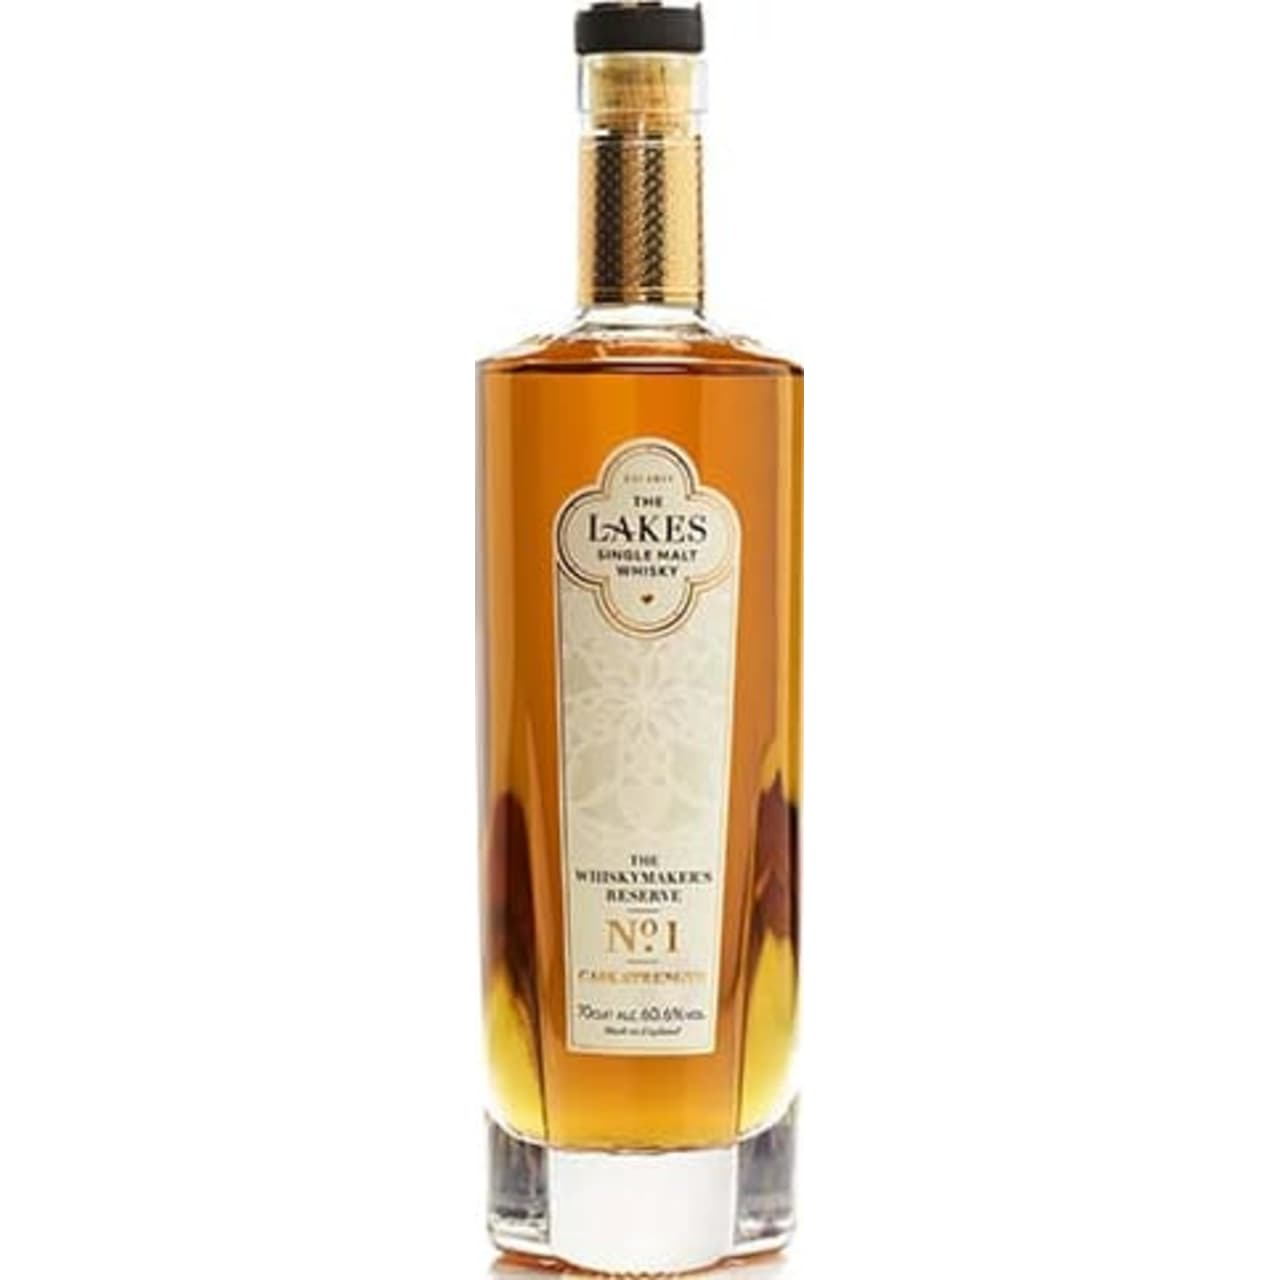 Product Image - The Lakes Single Malt Winemaker's Reserve No.1